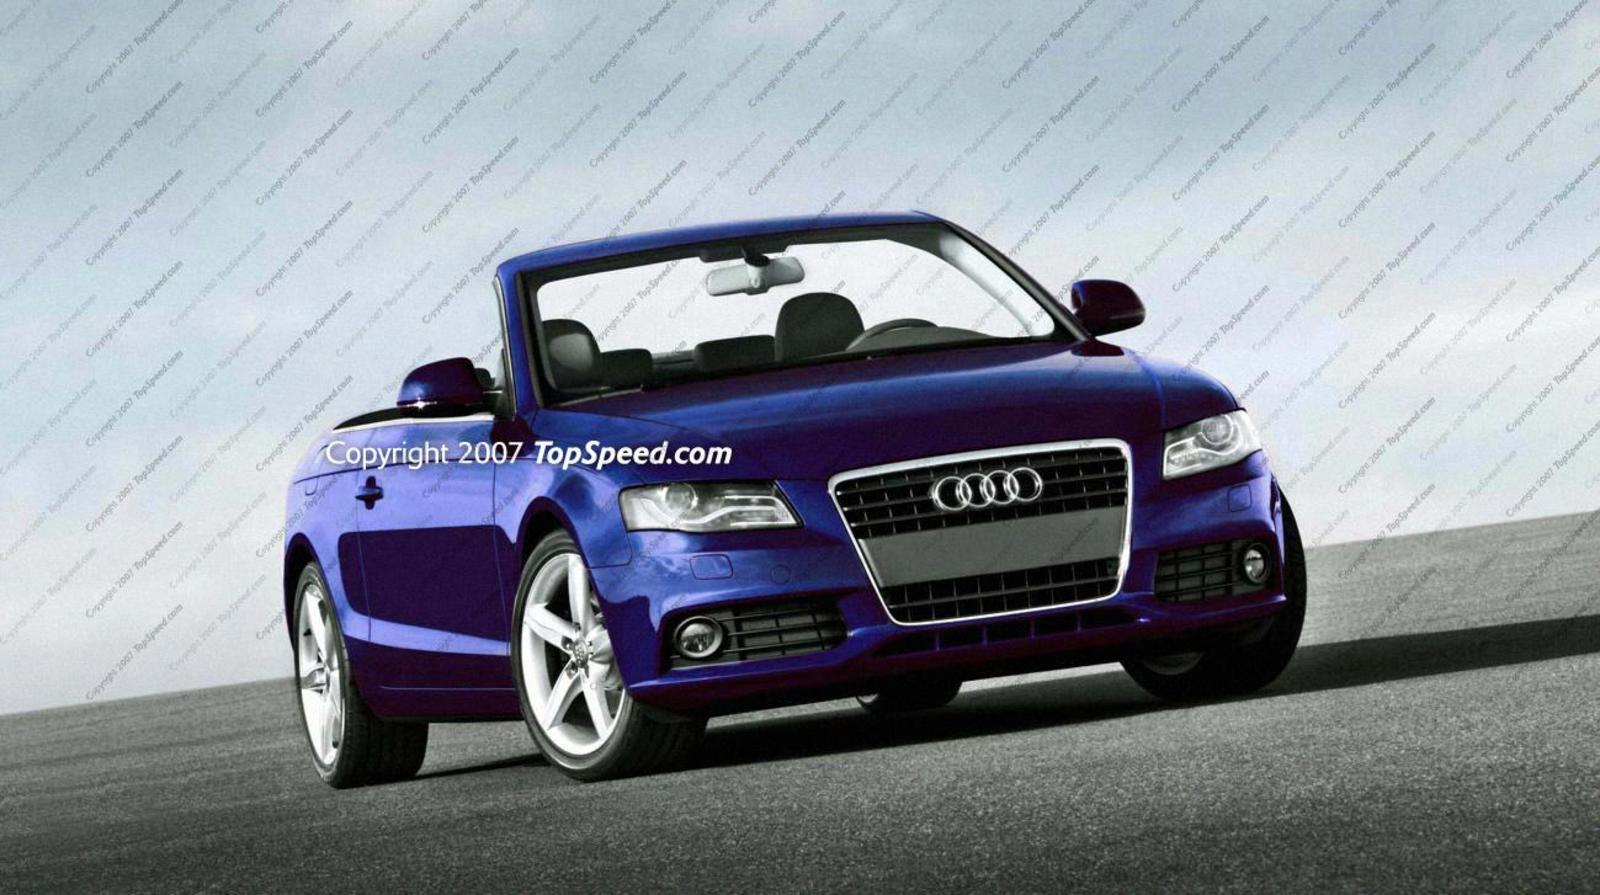 2009 audi a4 convertible review gallery top speed. Black Bedroom Furniture Sets. Home Design Ideas